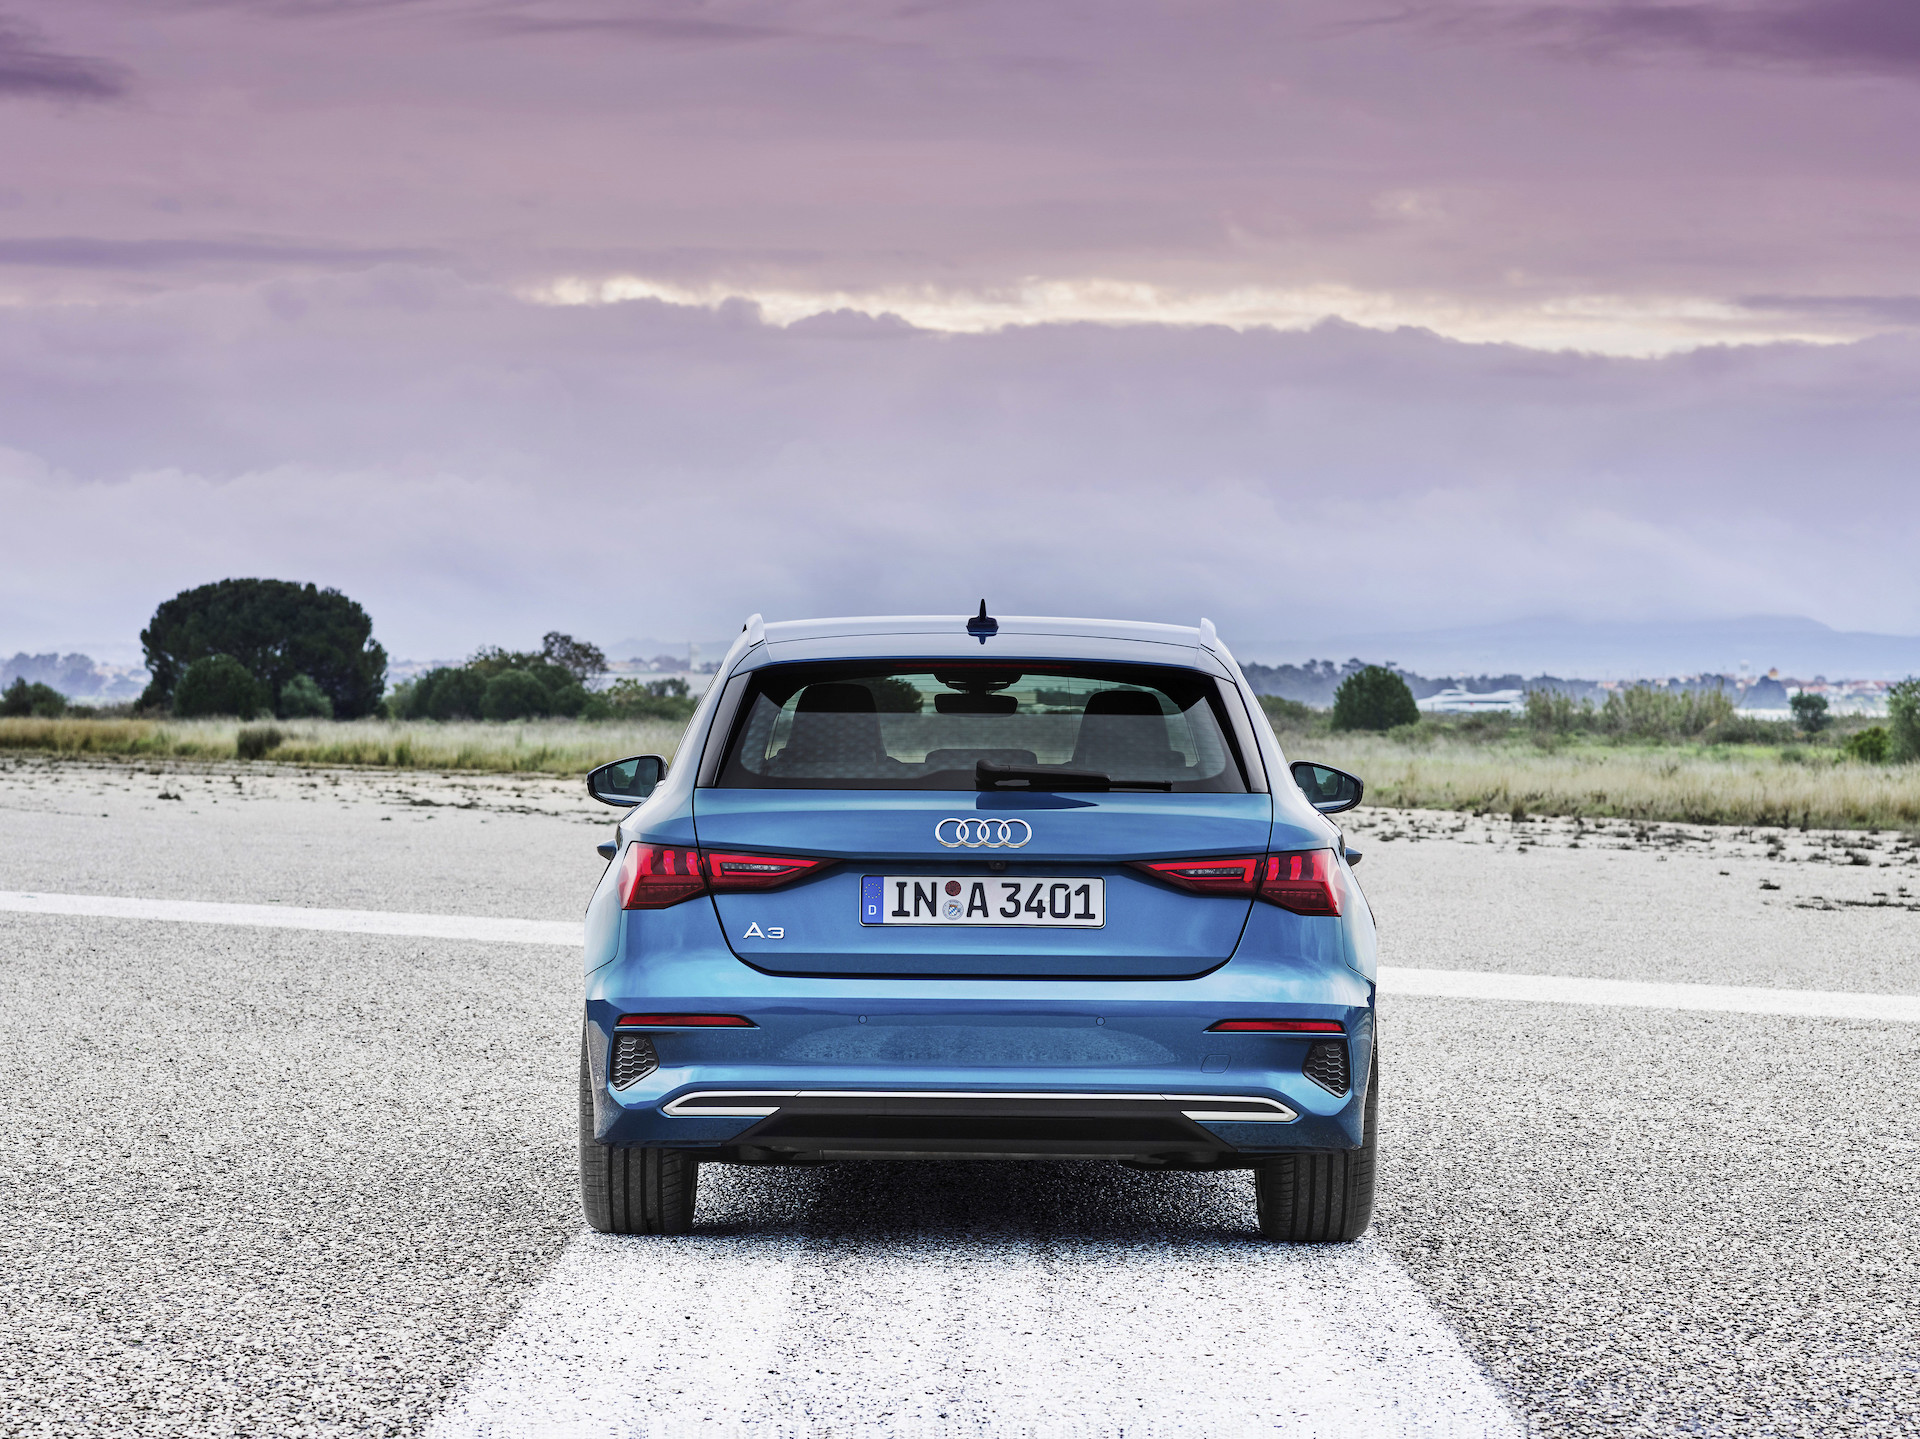 Fully Digital: This is the new Audi A3 Sportback 6